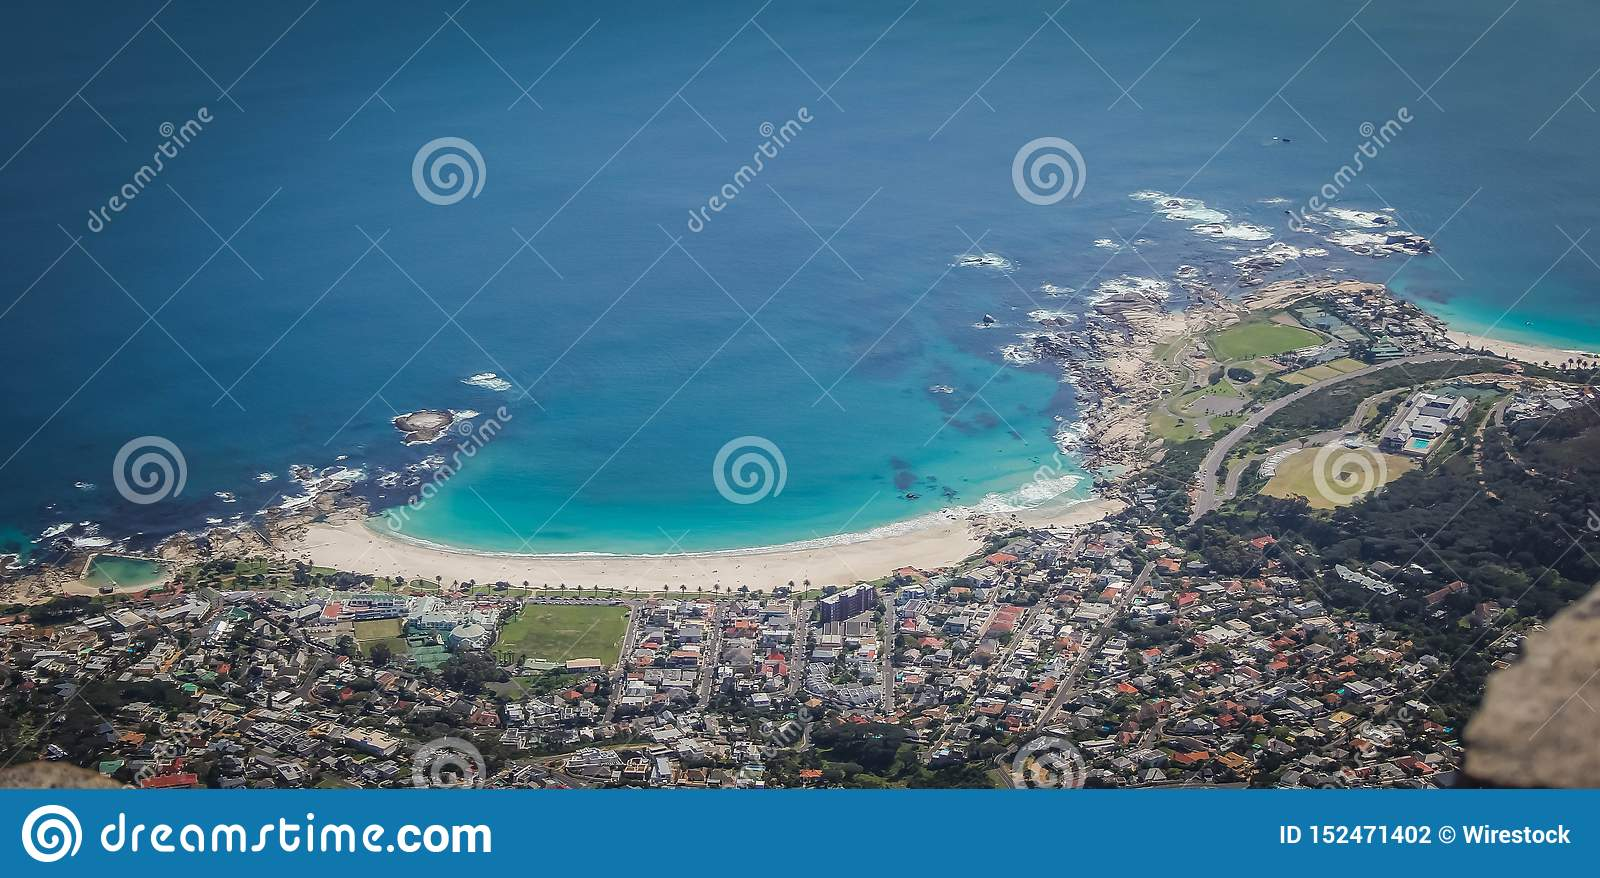 Aerial beautiful shot of the coast of Camps Bay, Cape Town, South Africa